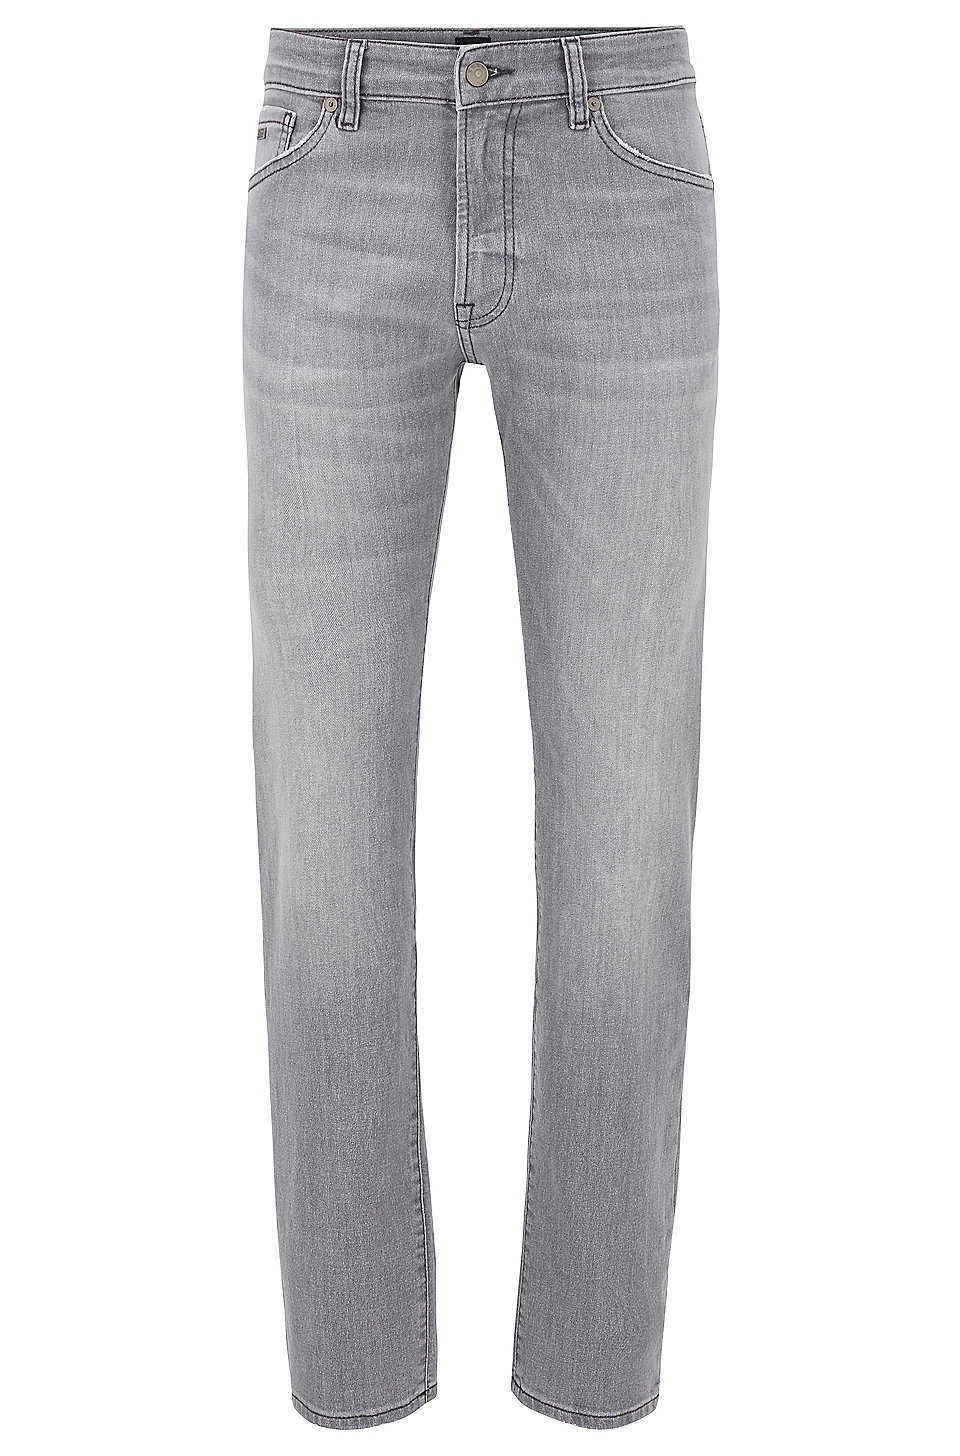 BOSS - Regular-fit jeans in grey super-stretch denim